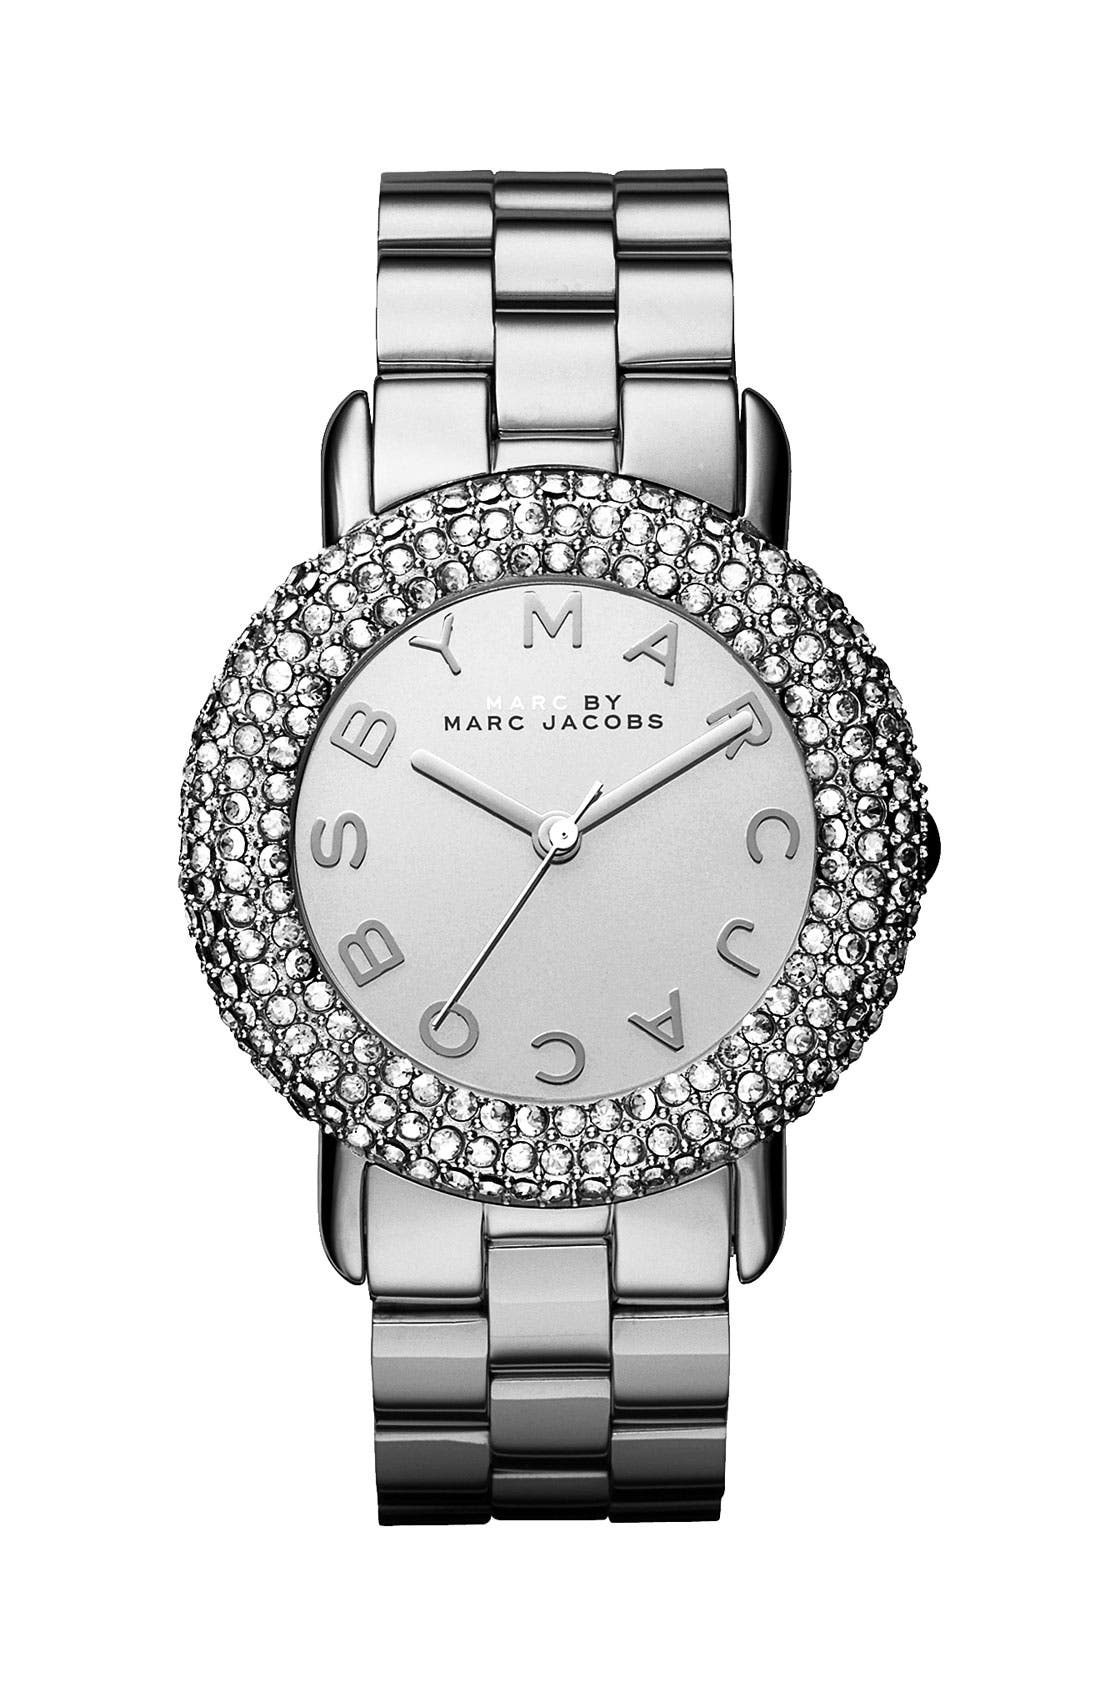 Alternate Image 1 Selected - MARC JACOBS 'Marci' Mirror Dial Crystal Bezel Watch, 36mm